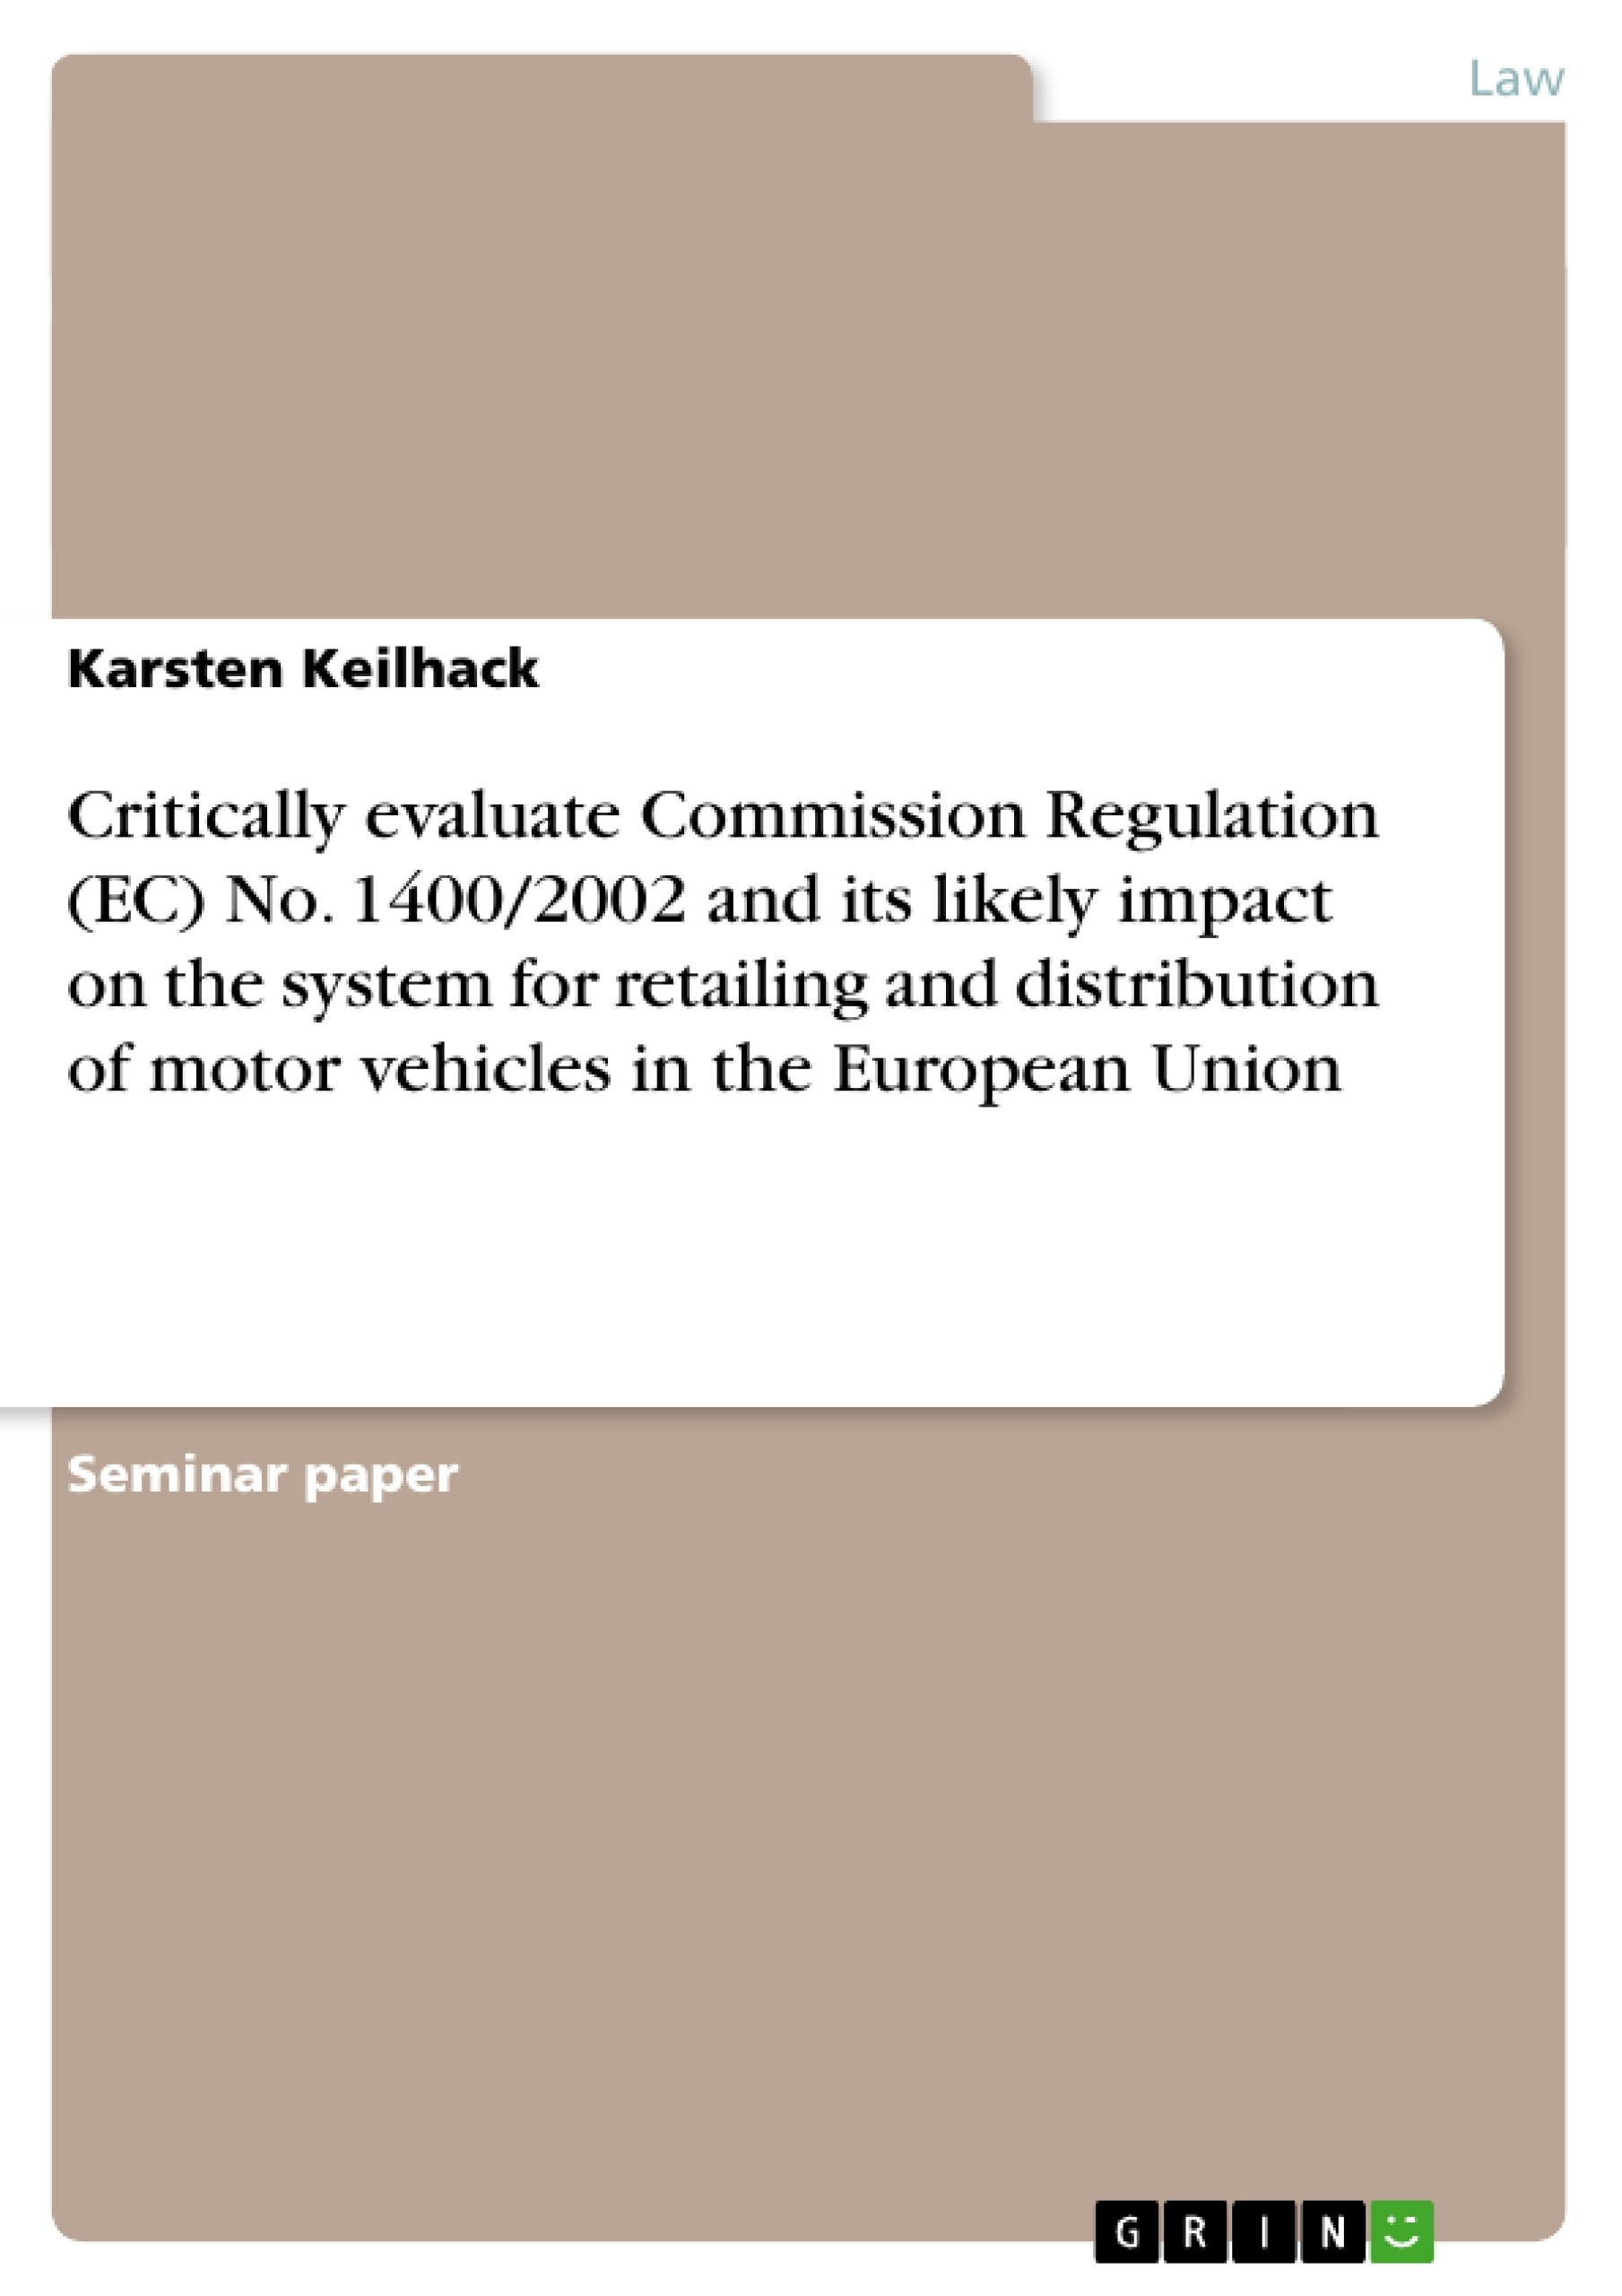 Title: Critically evaluate Commission Regulation (EC) No. 1400/2002 and its likely impact on the system for retailing and distribution of motor vehicles in the European Union